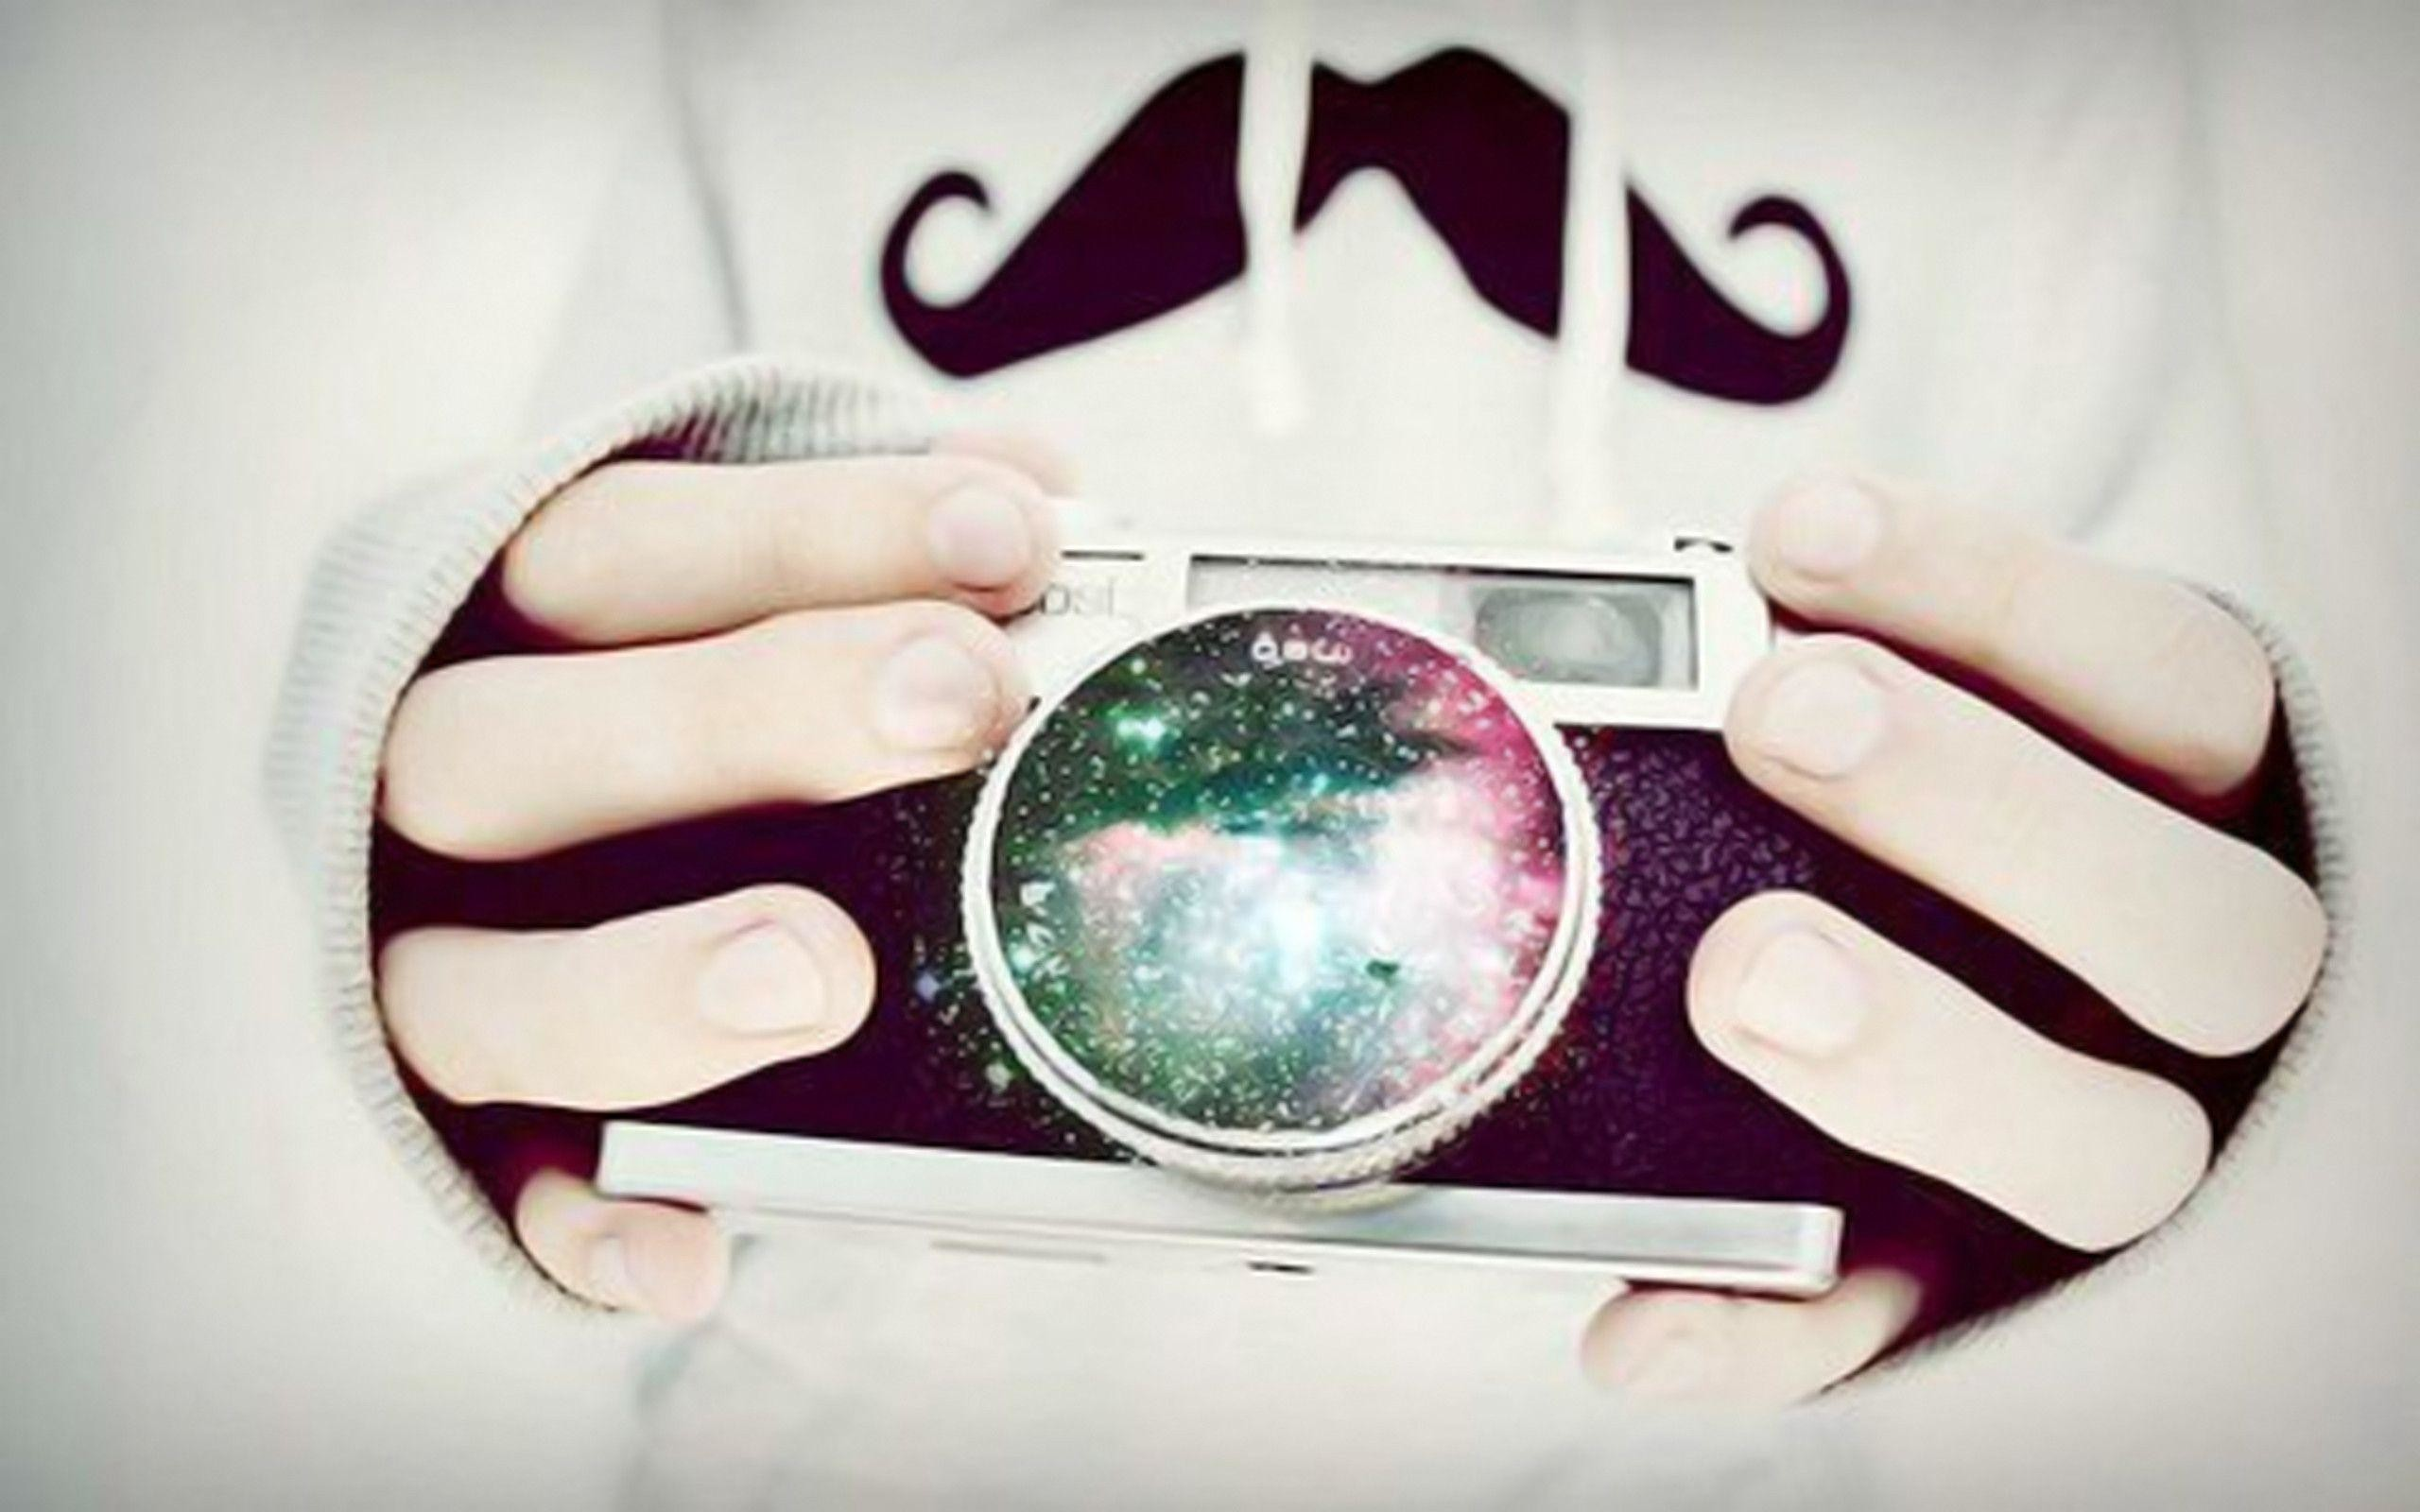 Cute Mustache Wallpapers on Tumblr ·①